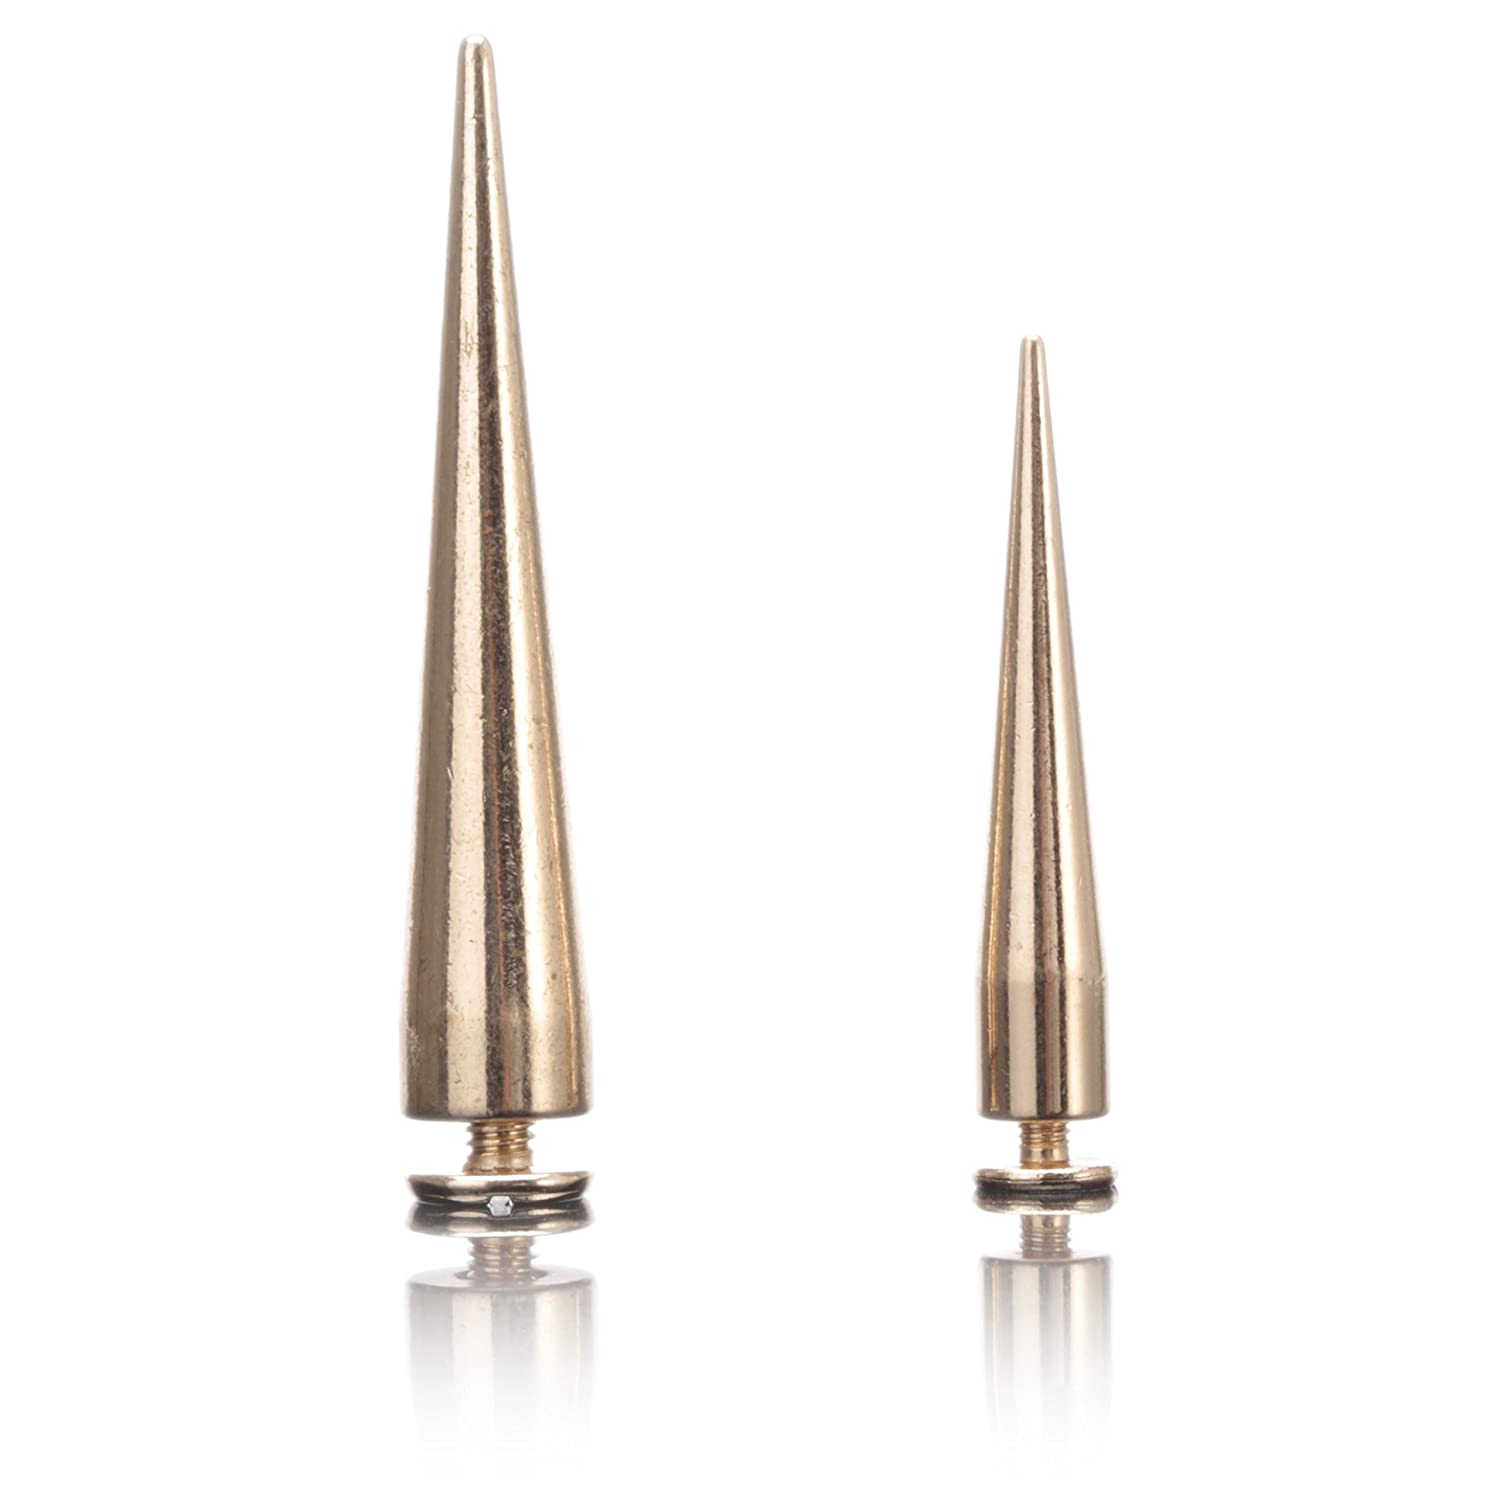 55MMX20Pcs, Gold Uviviu 20 Pcs Brass Spike Studs and Spikes Metalic Screw Back Spots,for Leathercraft Rivet Bullet Leather Clothing Punk DIY Leather Crafts